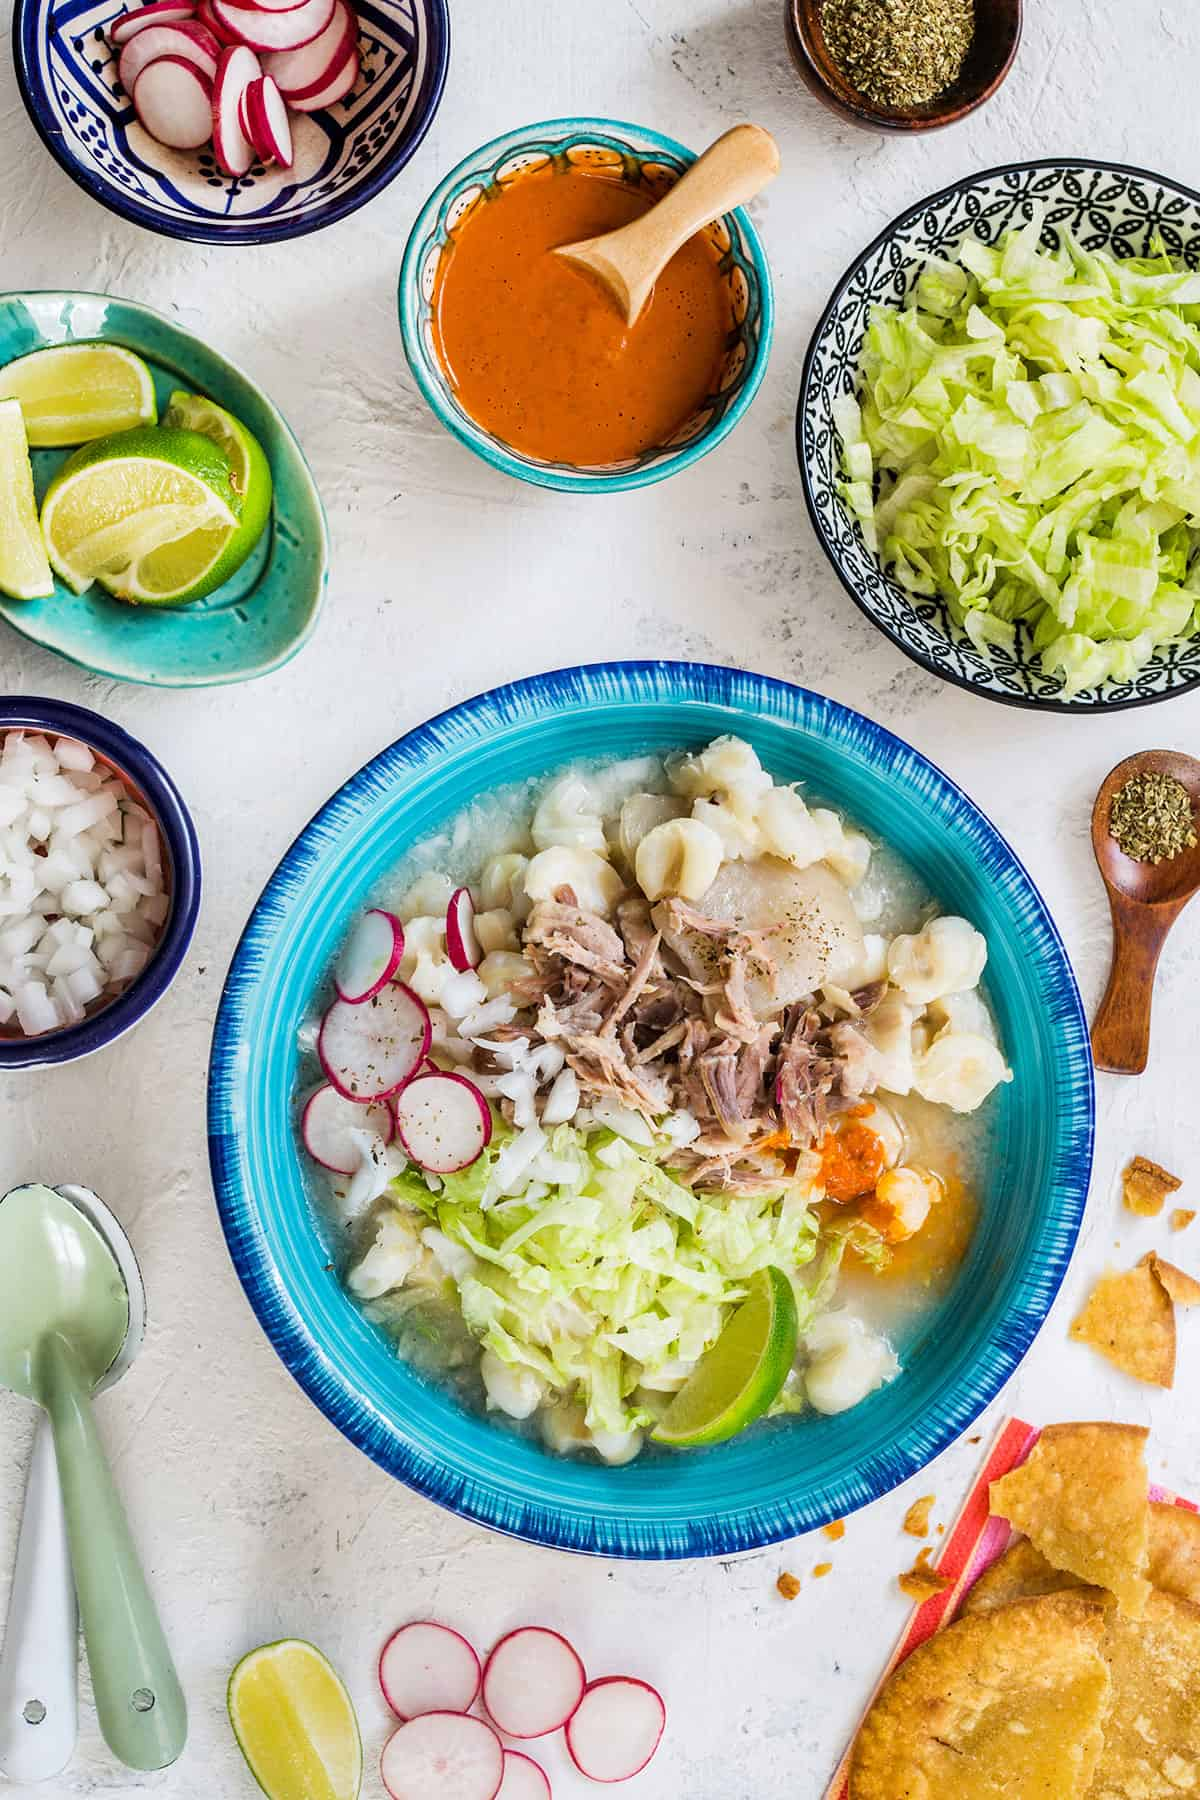 White pozole served with various toppings.